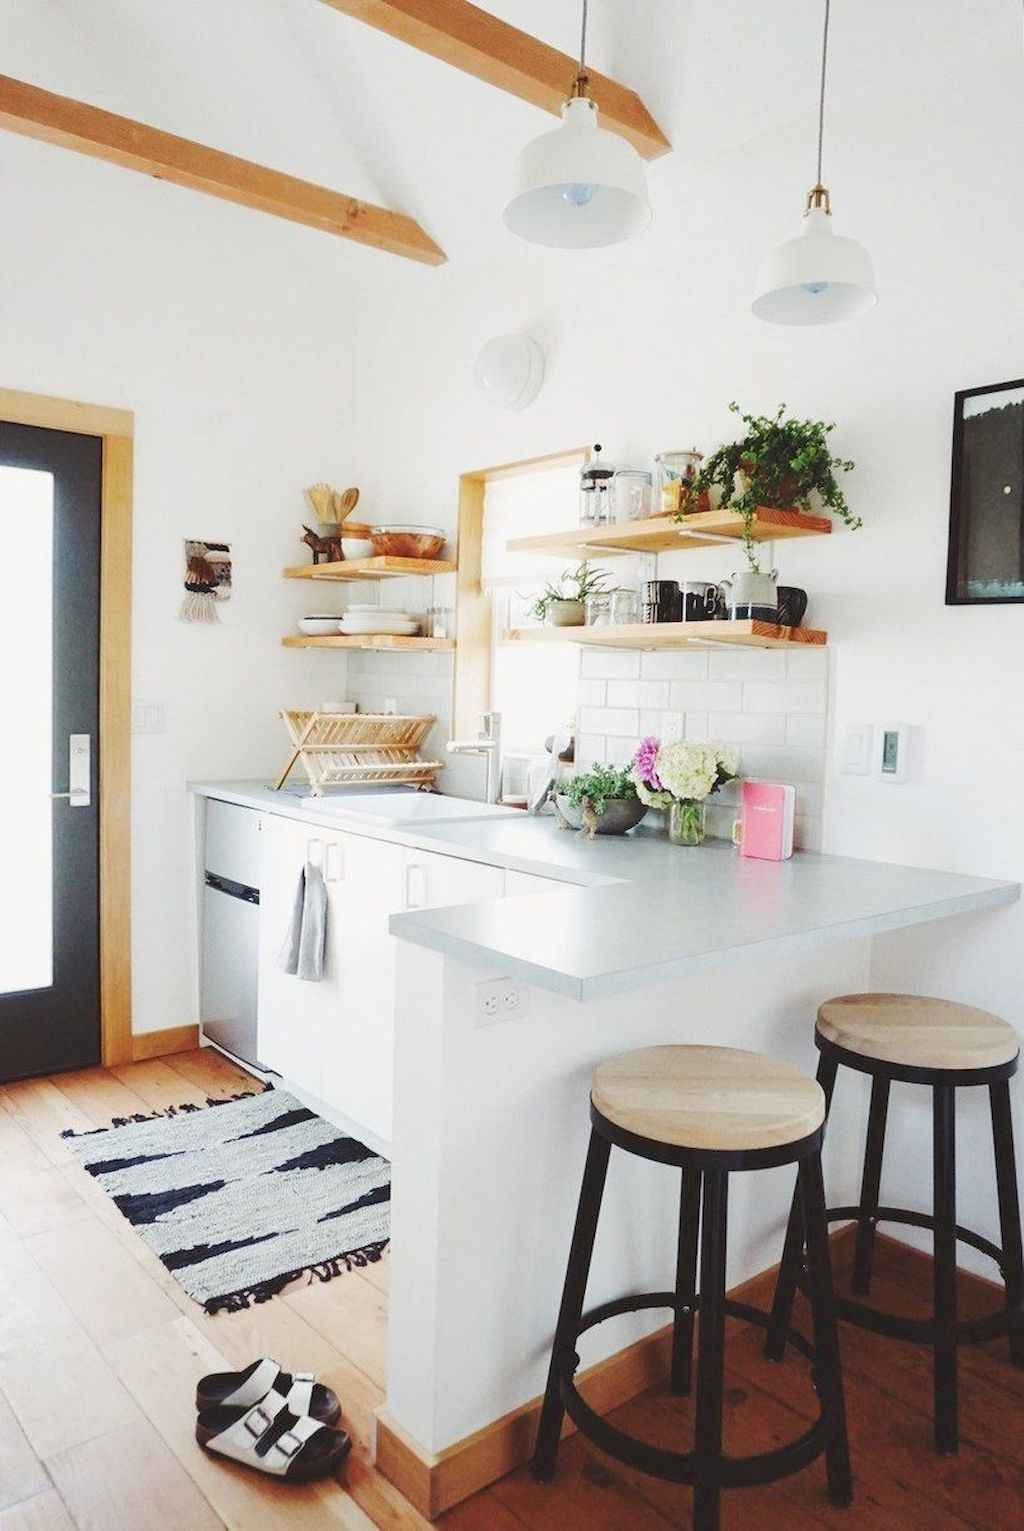 04 Tiny House Kitchen Storage Organization and Tips Ideas